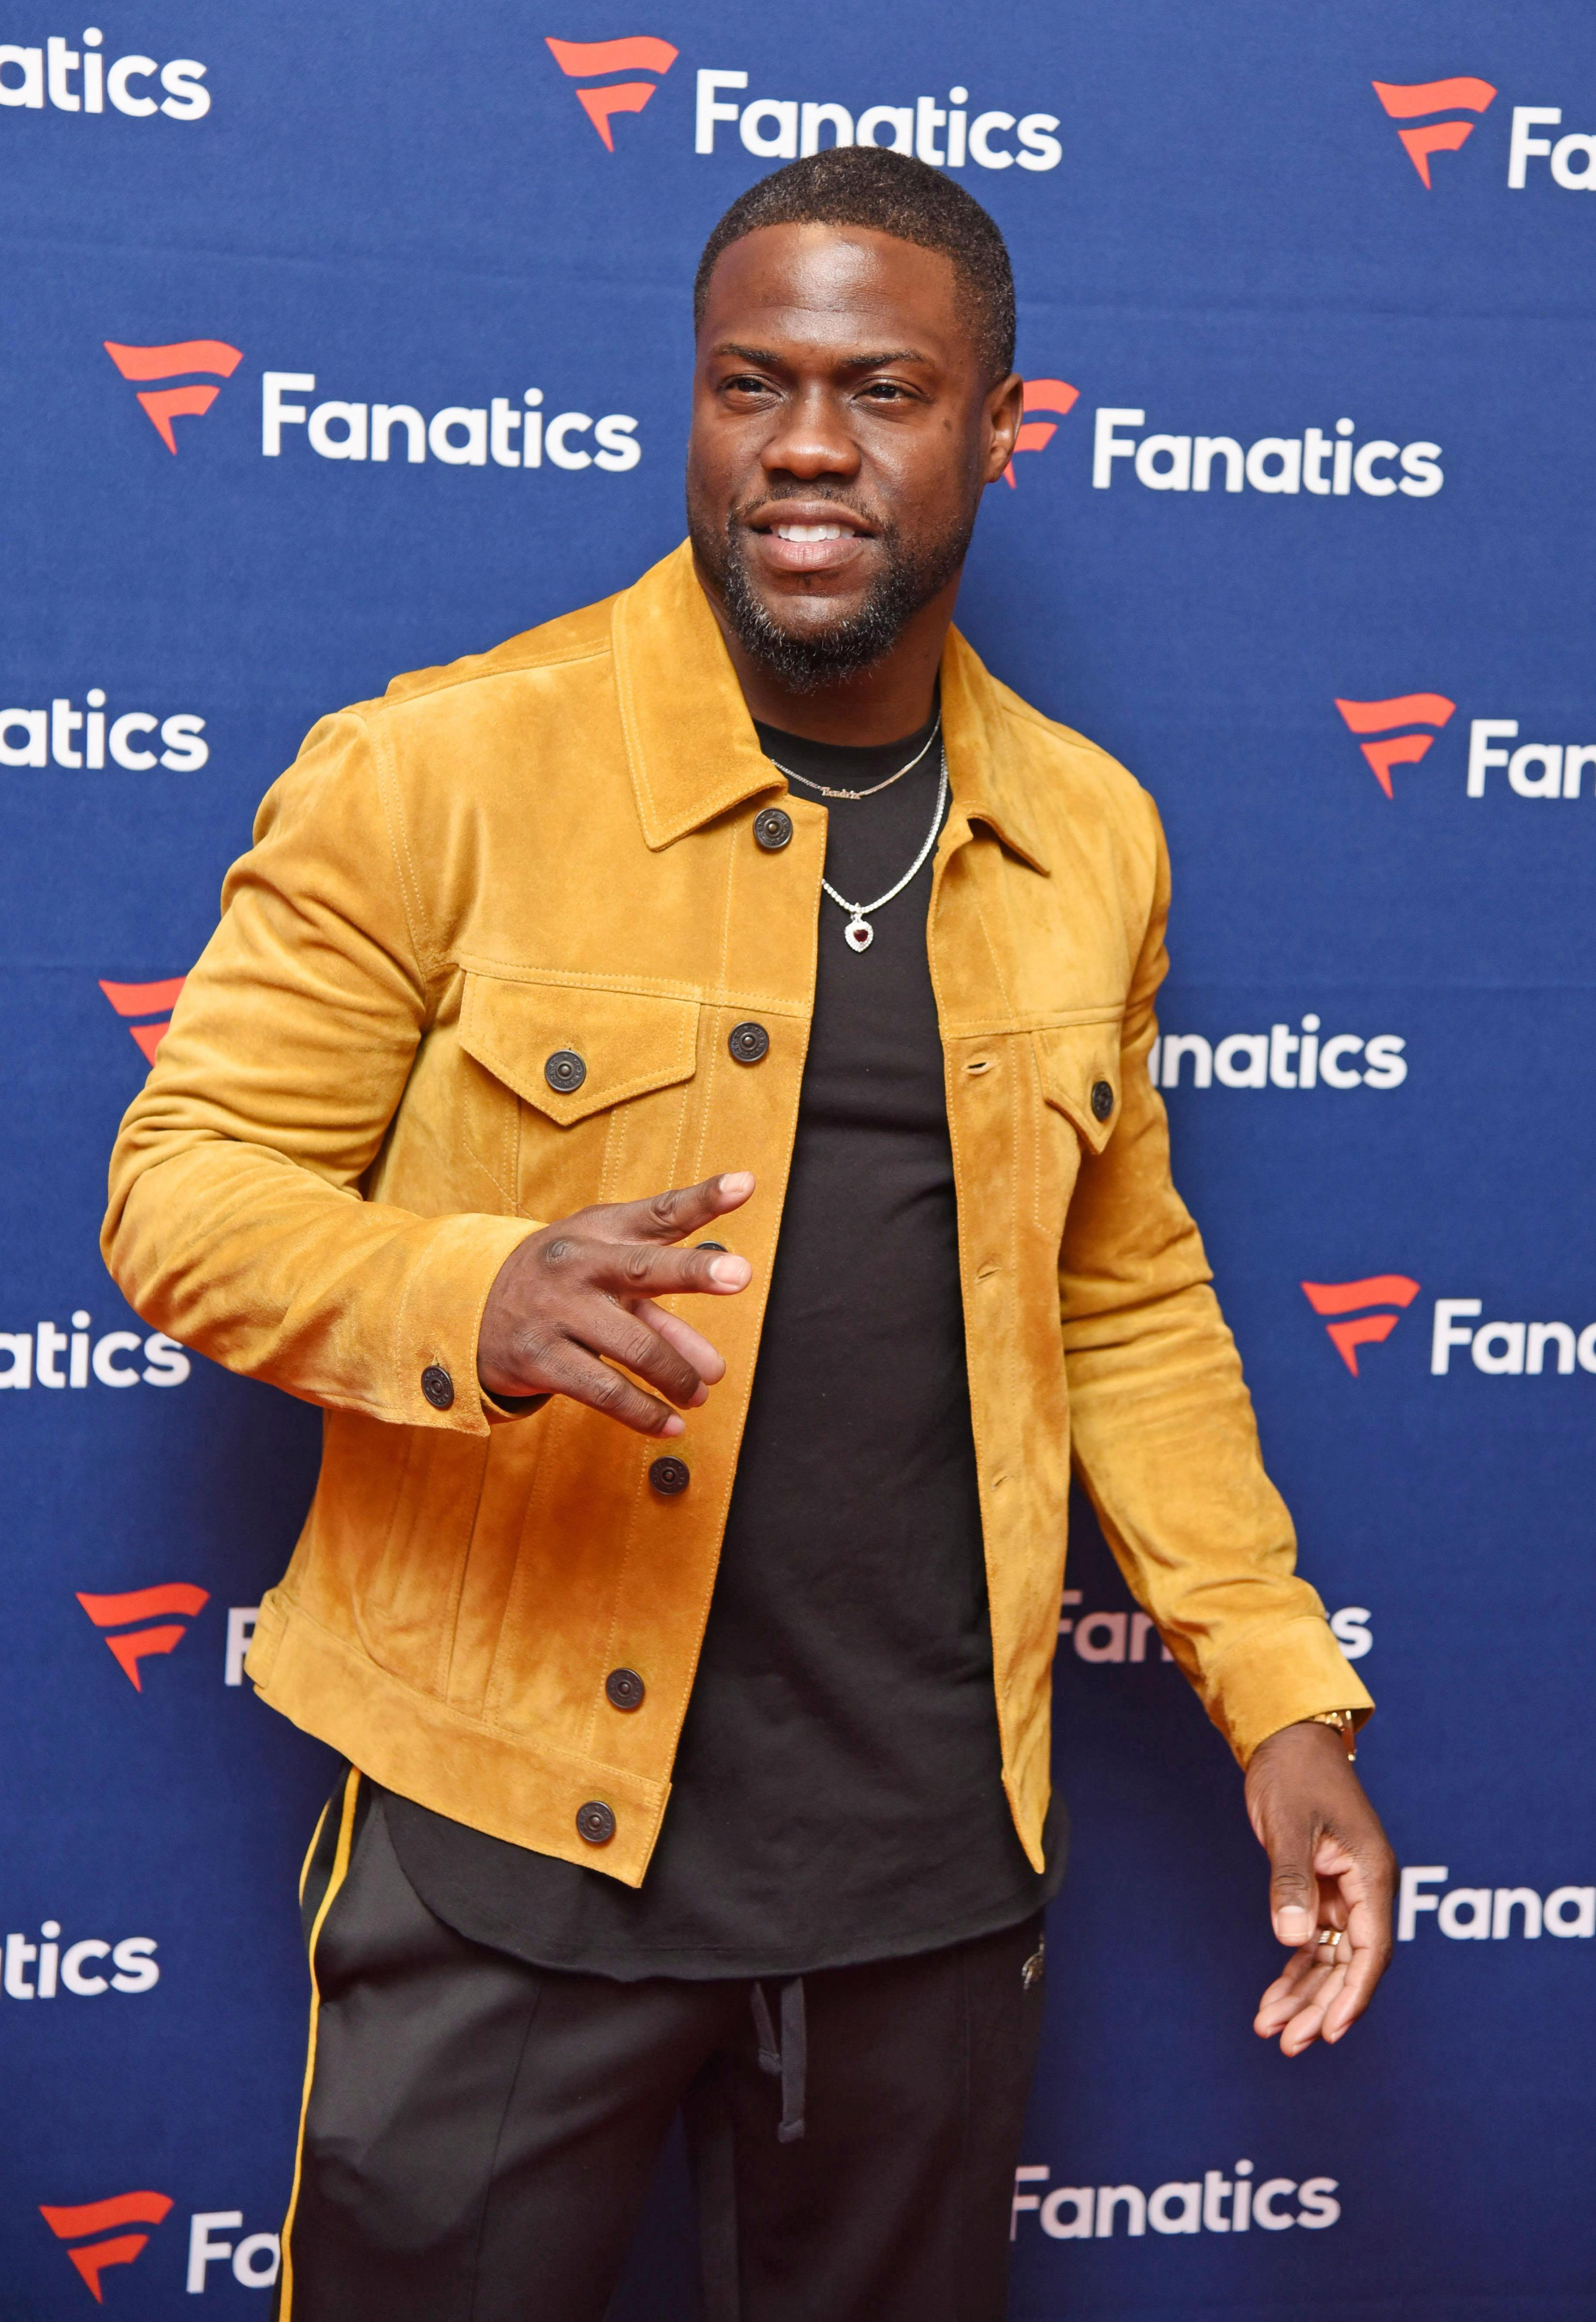 Oscars confirm 2019 awards WON'T have a host after Kevin Hart axing